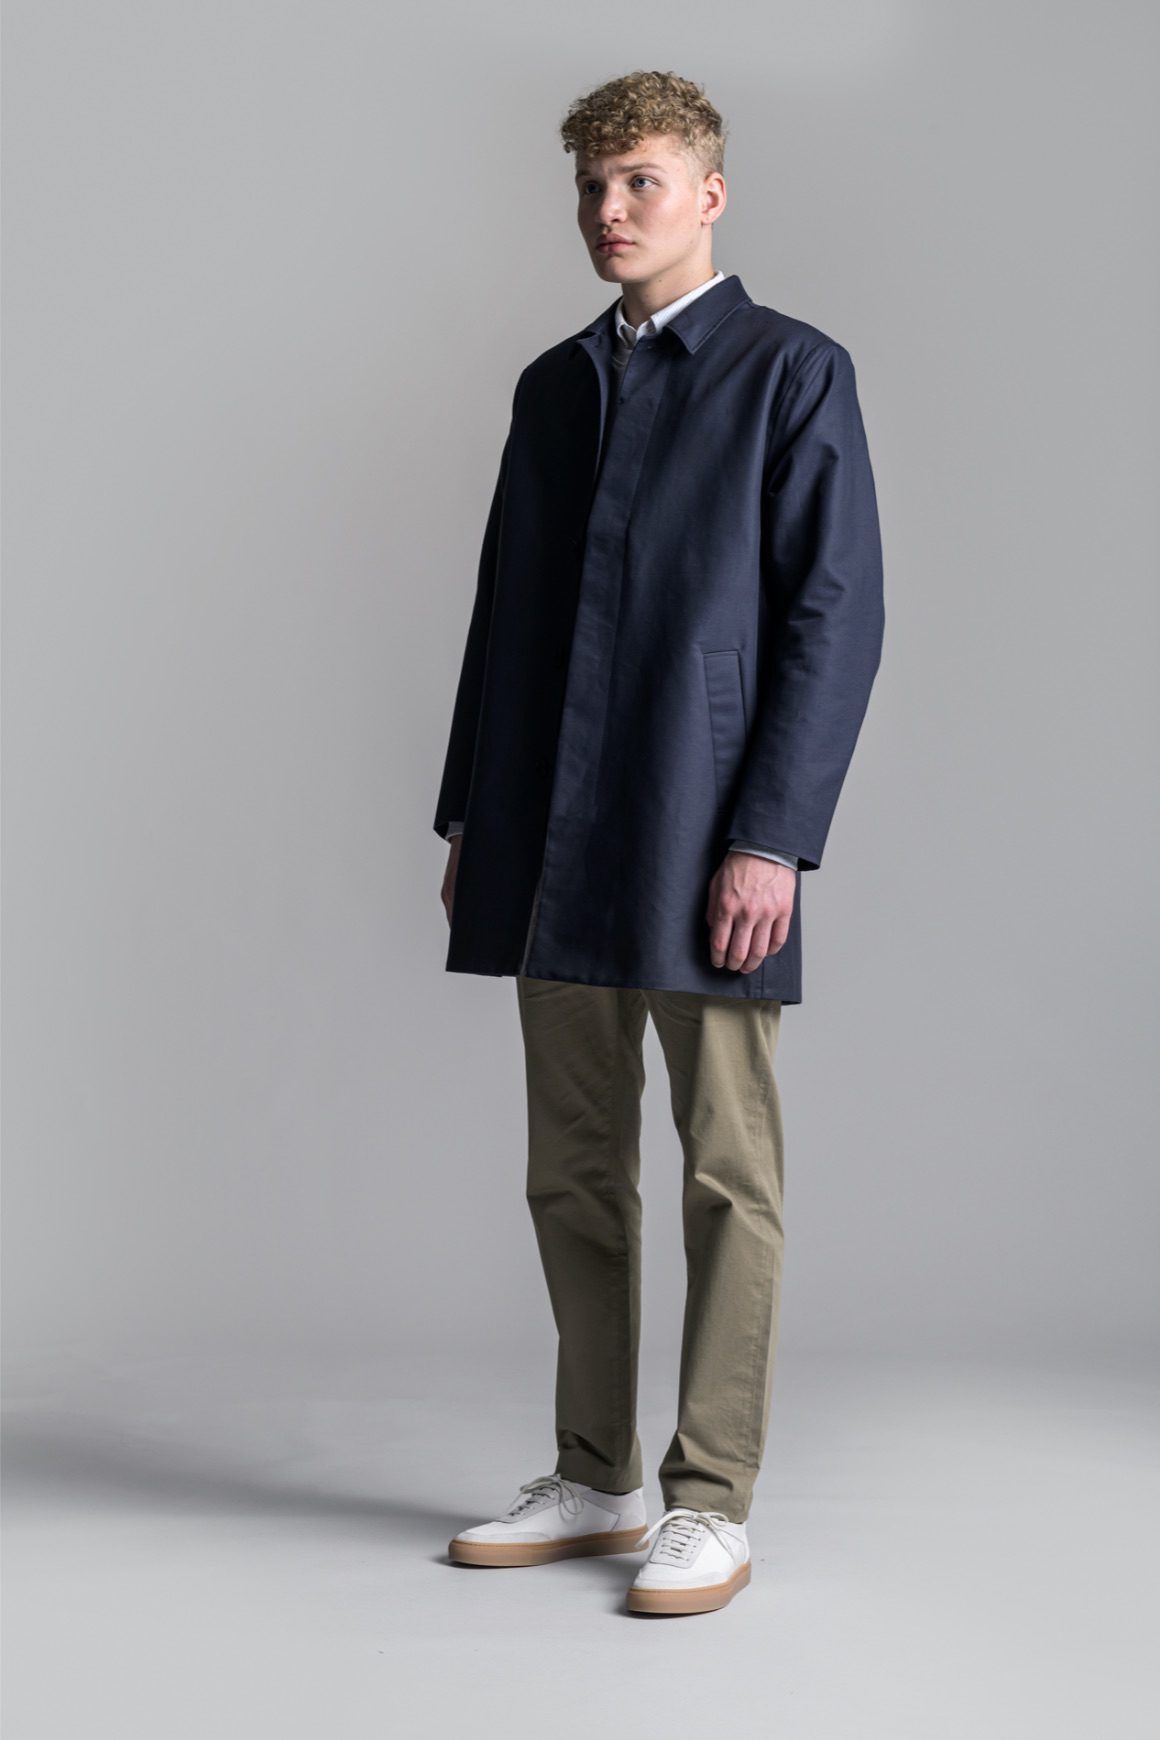 """ASKET Introduces The """"Only Outerwear You Will Ever Need"""""""